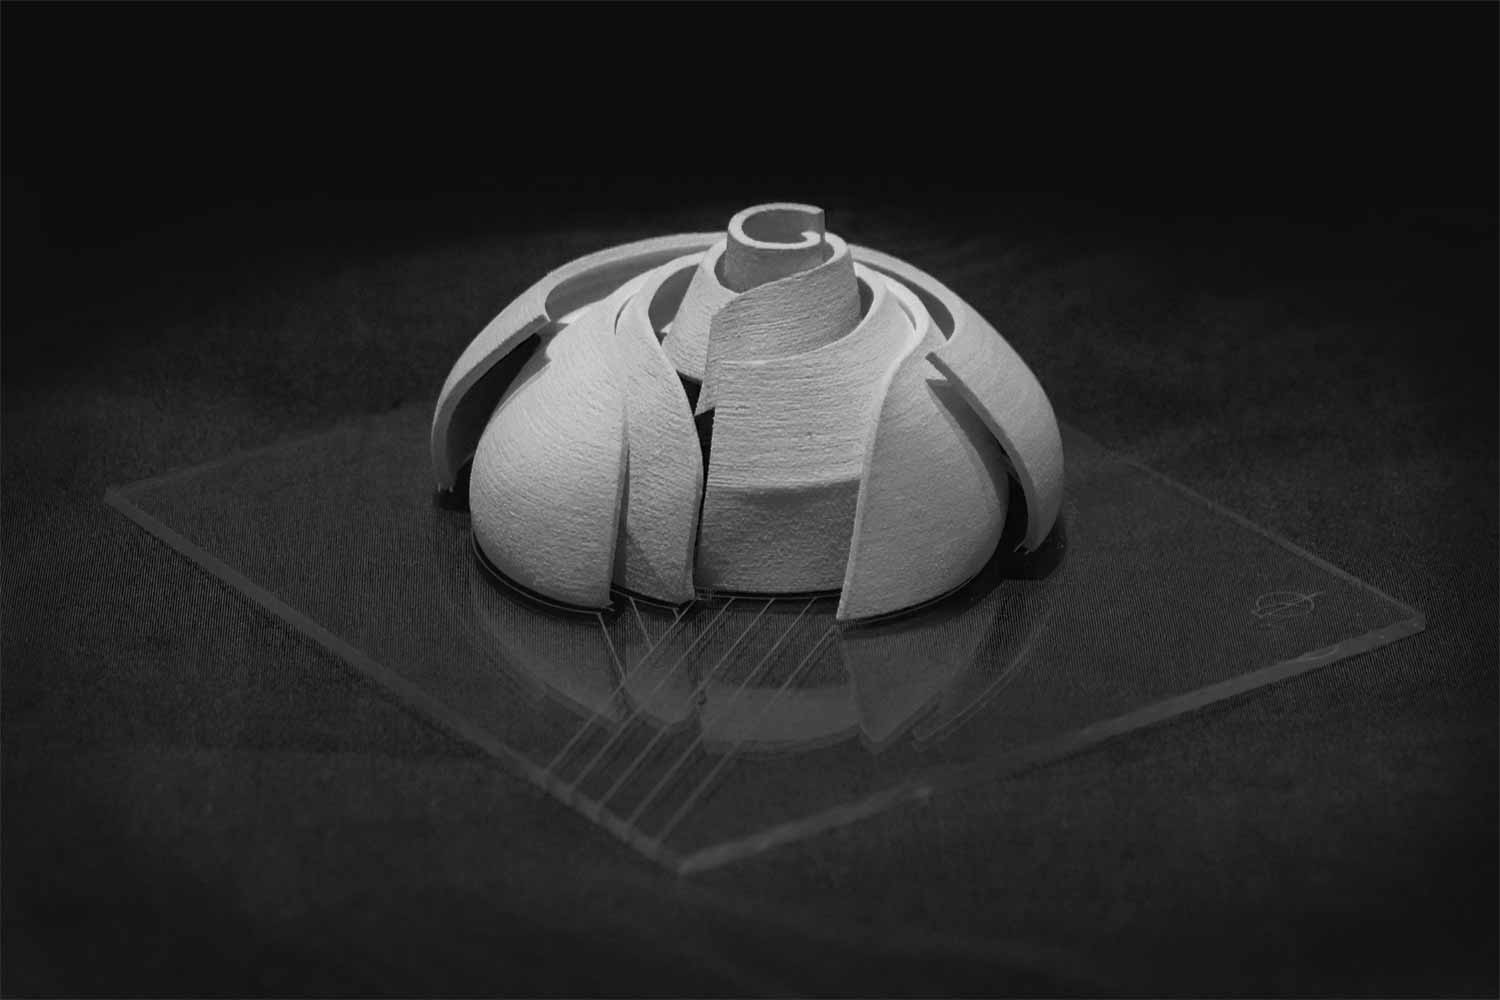 3D Printed Shell - Creative Lab